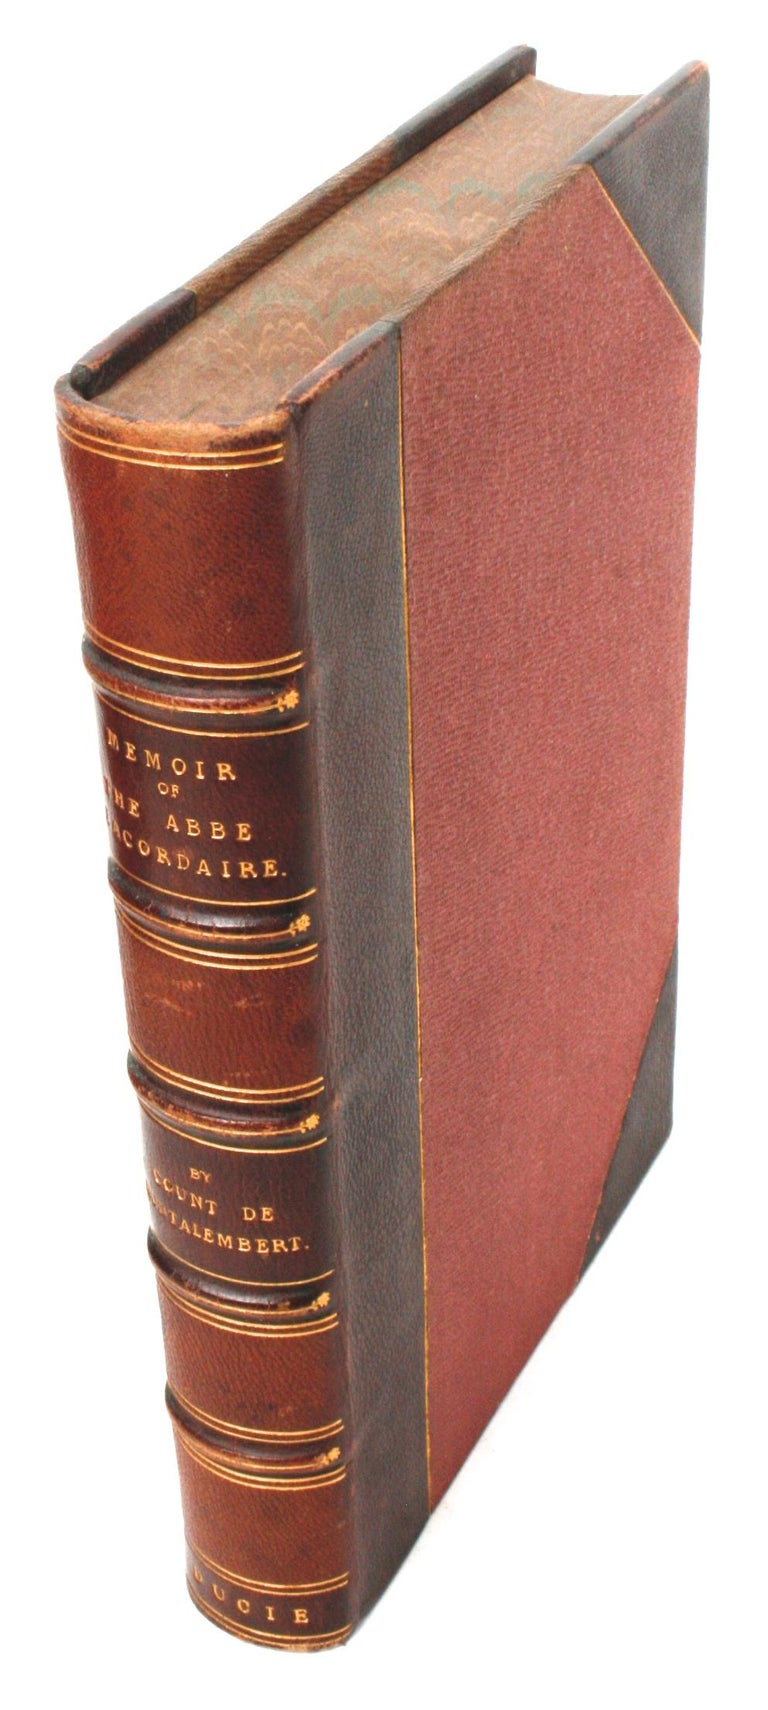 Memoir of the Abbé Lacordaire by the Count De Montalembert, First Edition In Good Condition For Sale In valatie, NY